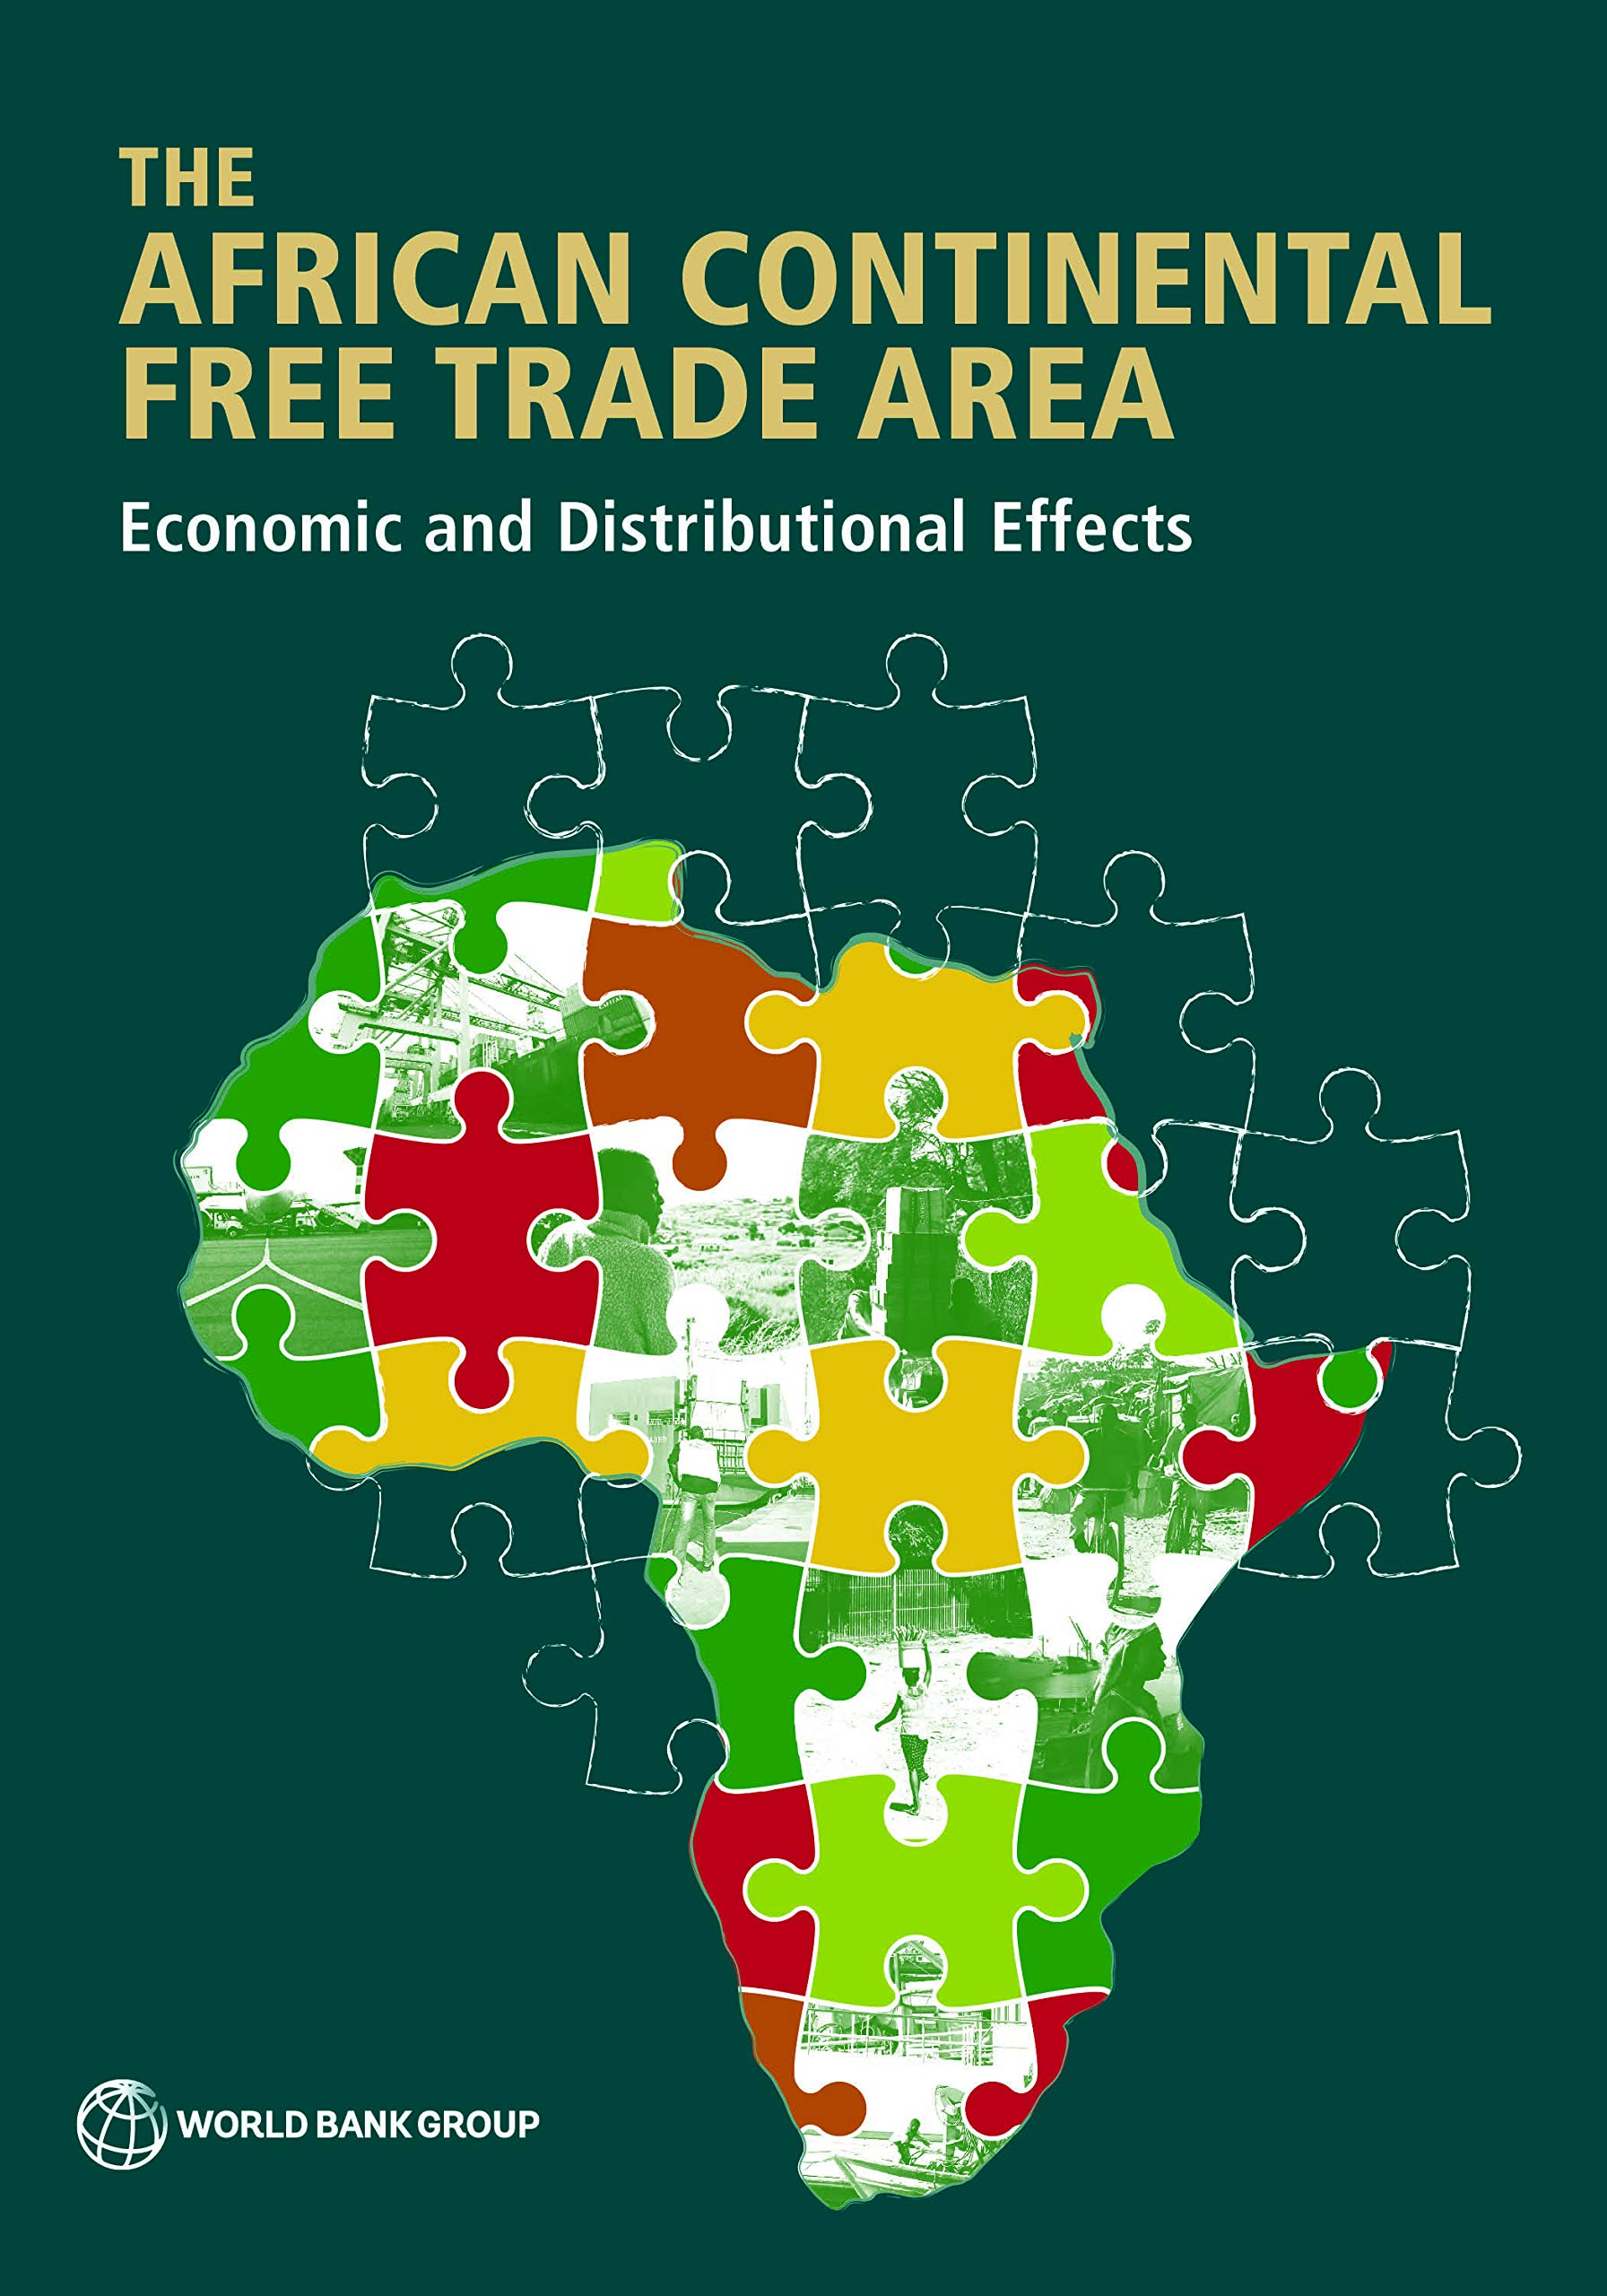 The African Continental Free Trade Area: Economic and Distributional Effects